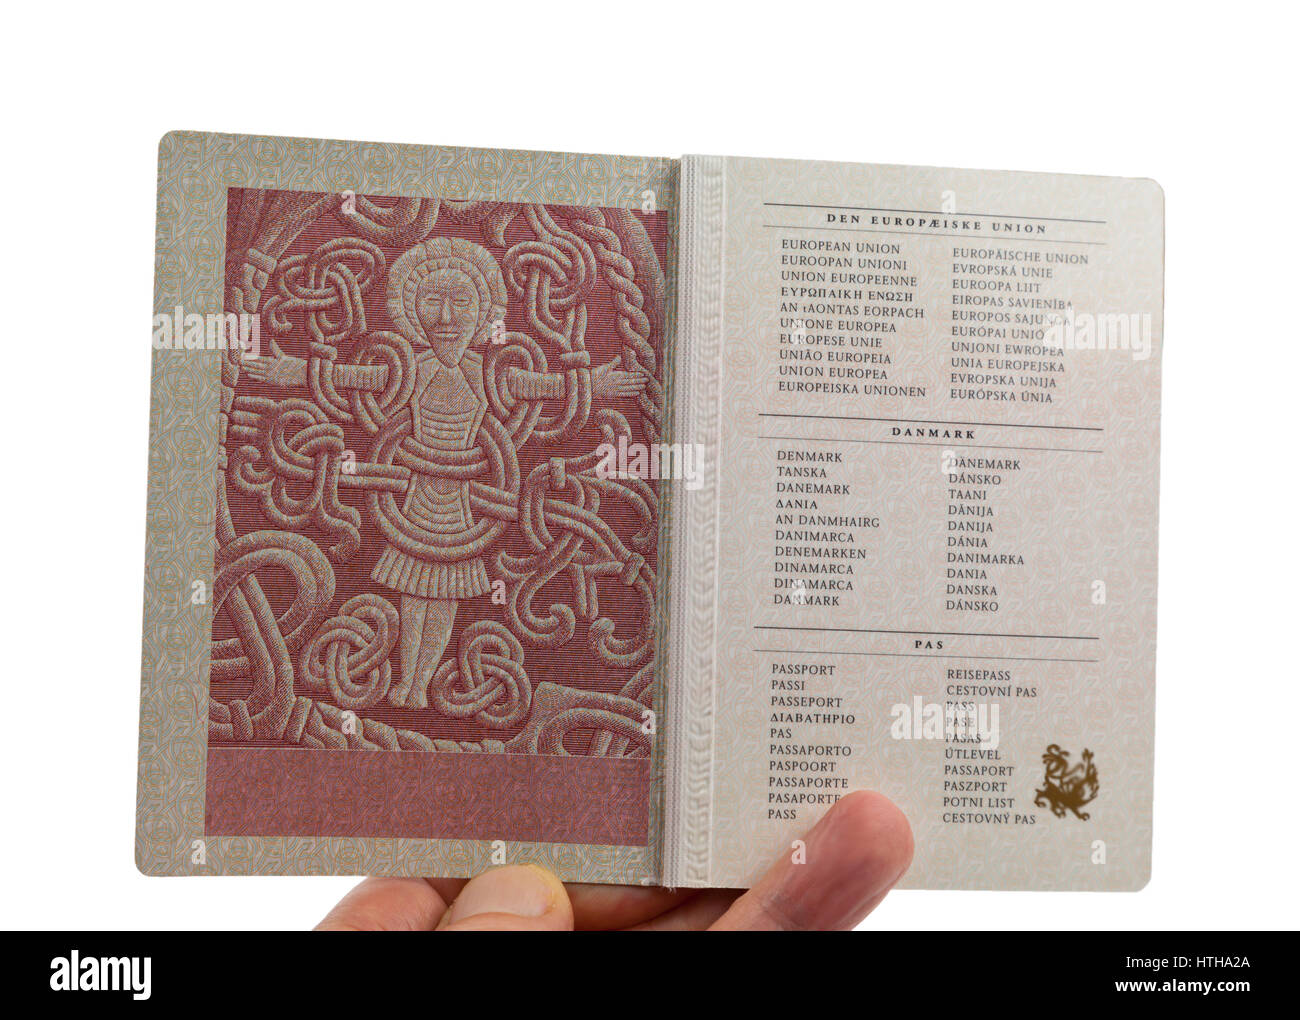 Page 2 in the Danish passport displays the figure of Christ from the Jelling rune stone raised by Viking king Harald Stock Photo